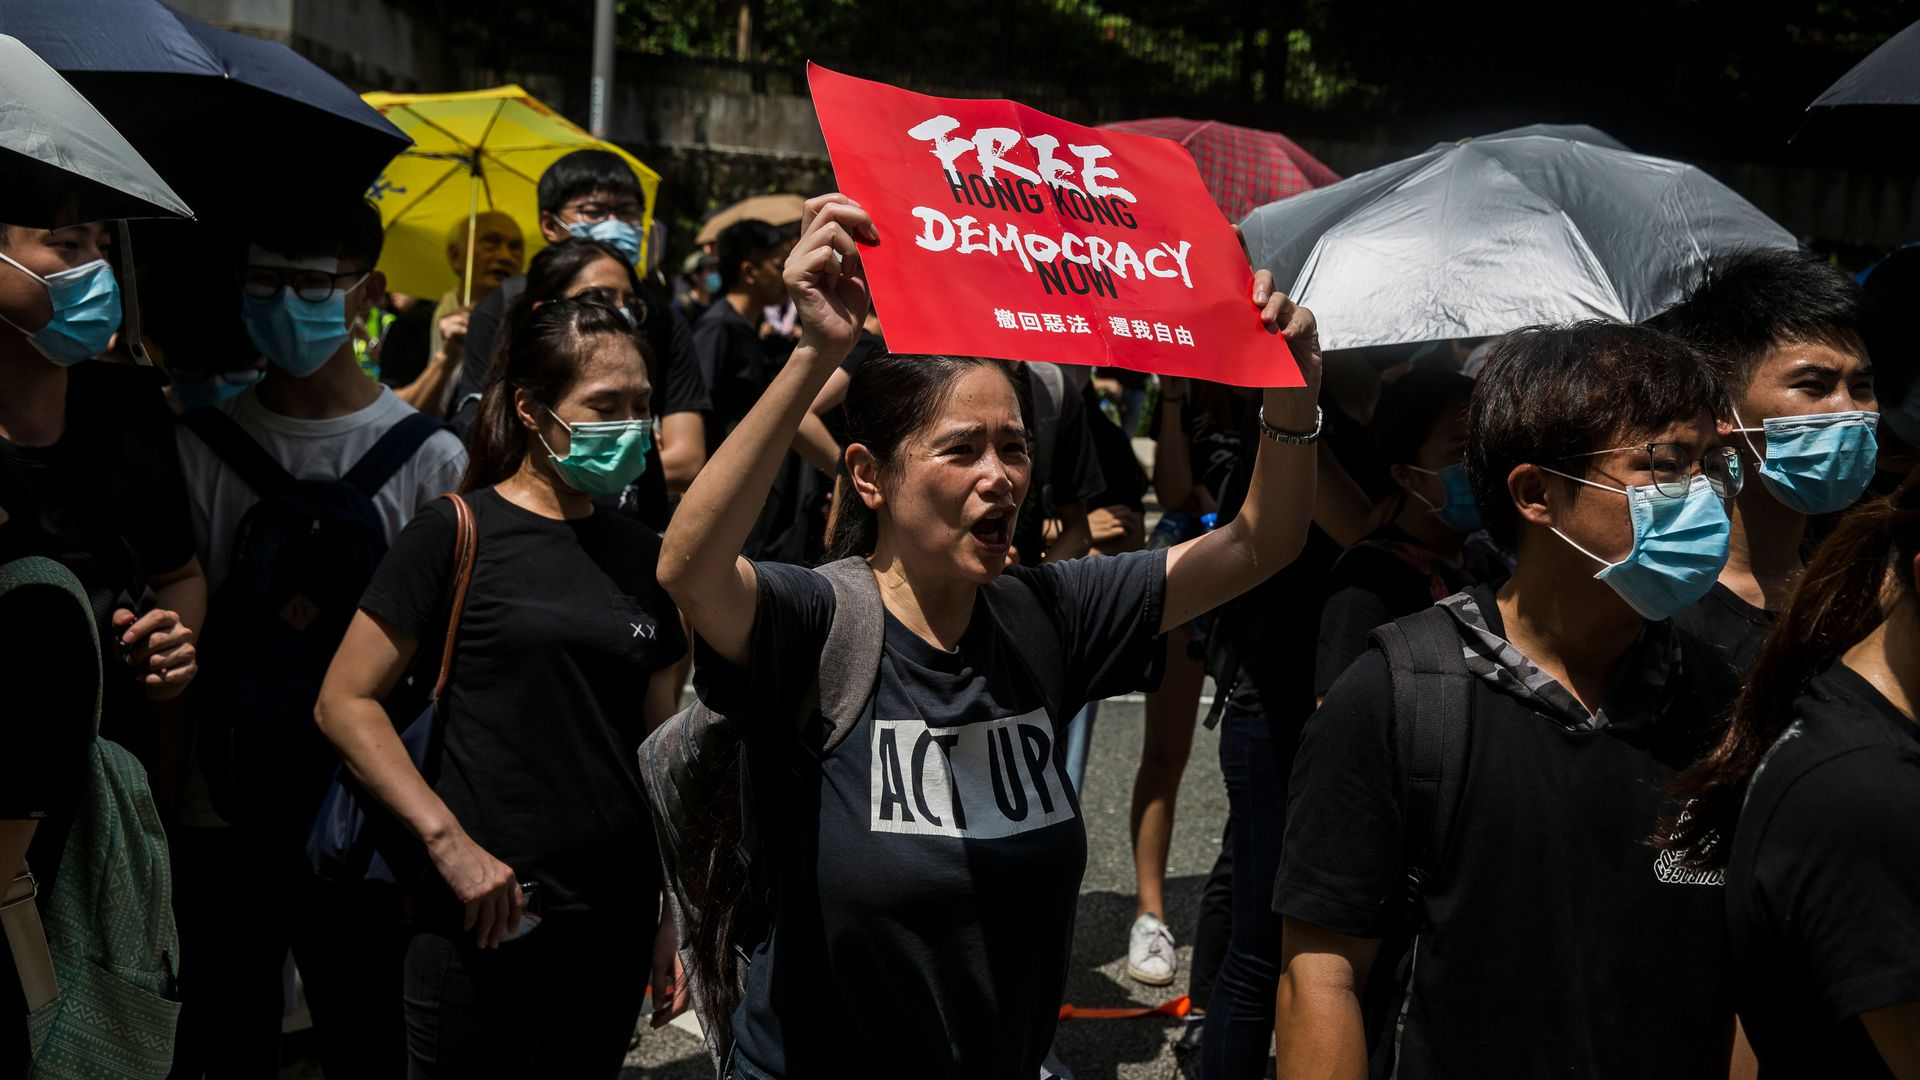 Protesters gather outside the Central Government Offices during a rally against a controversial extradition bill in Hong Kong on June 27.